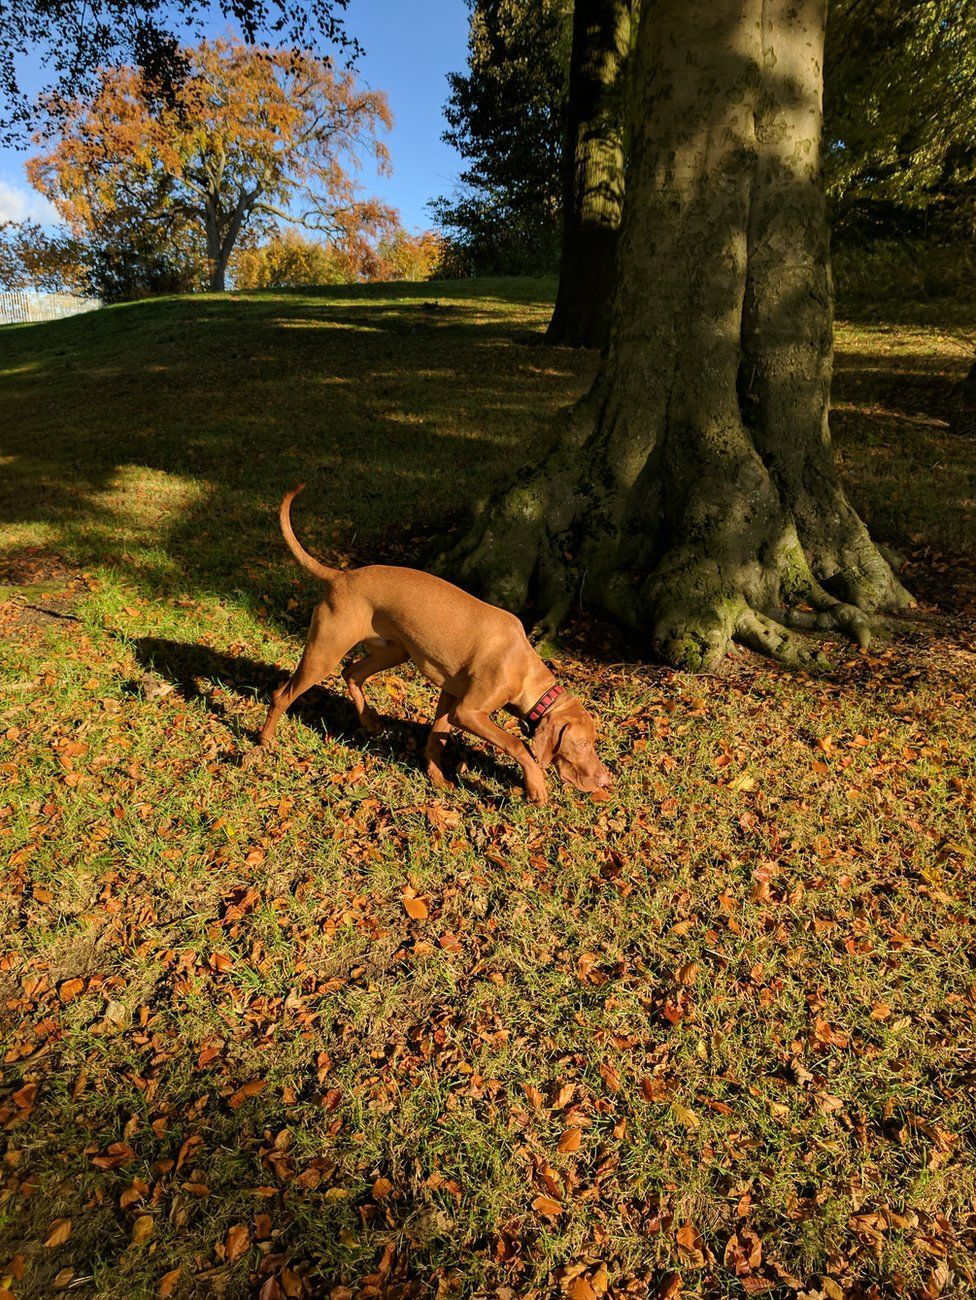 Zak the puppy amongst the leaves